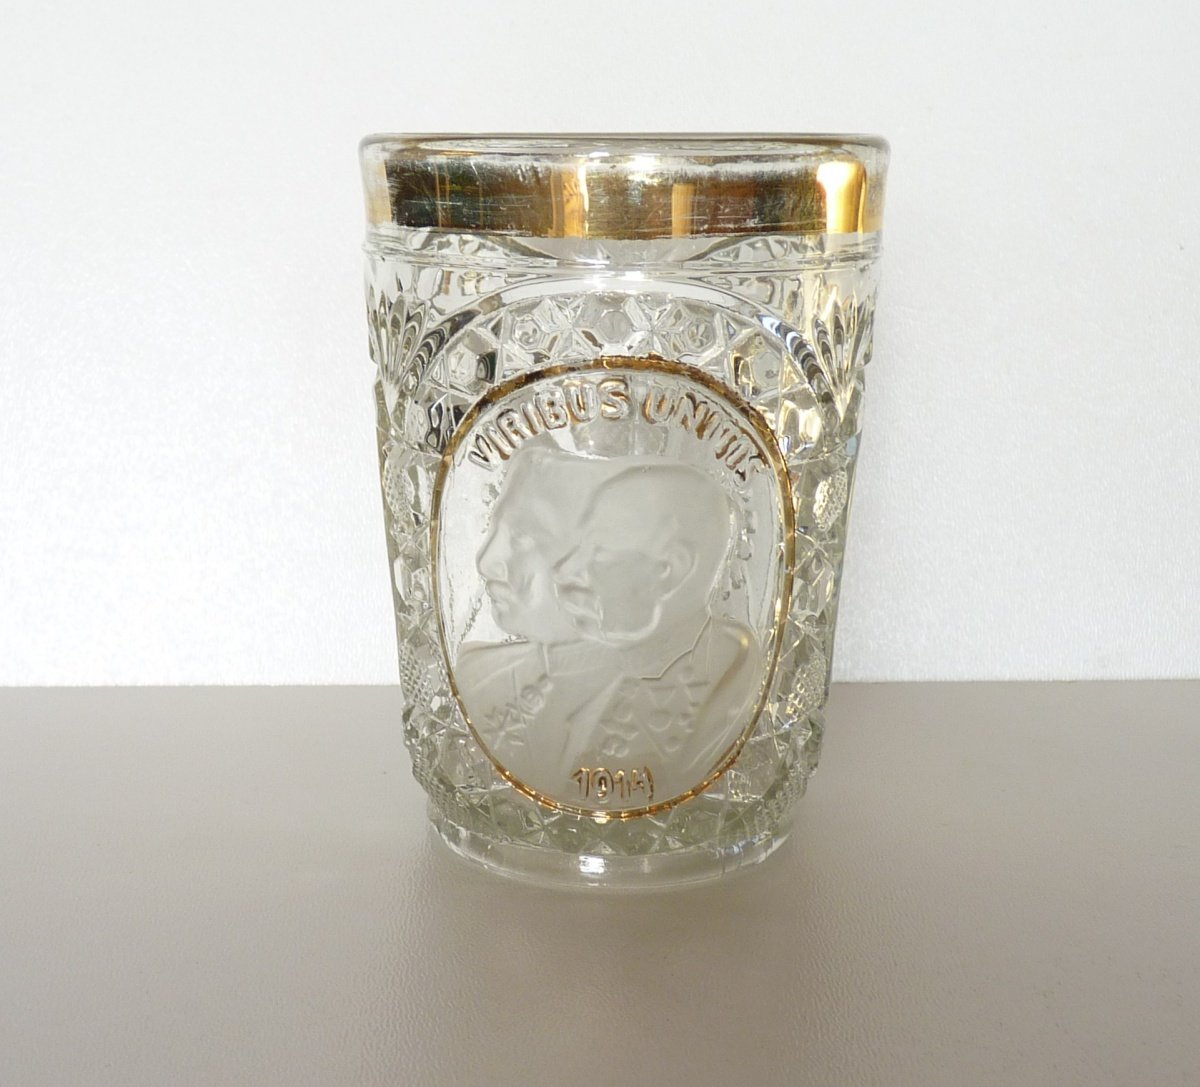 Pressed glass with portraits of the emperors